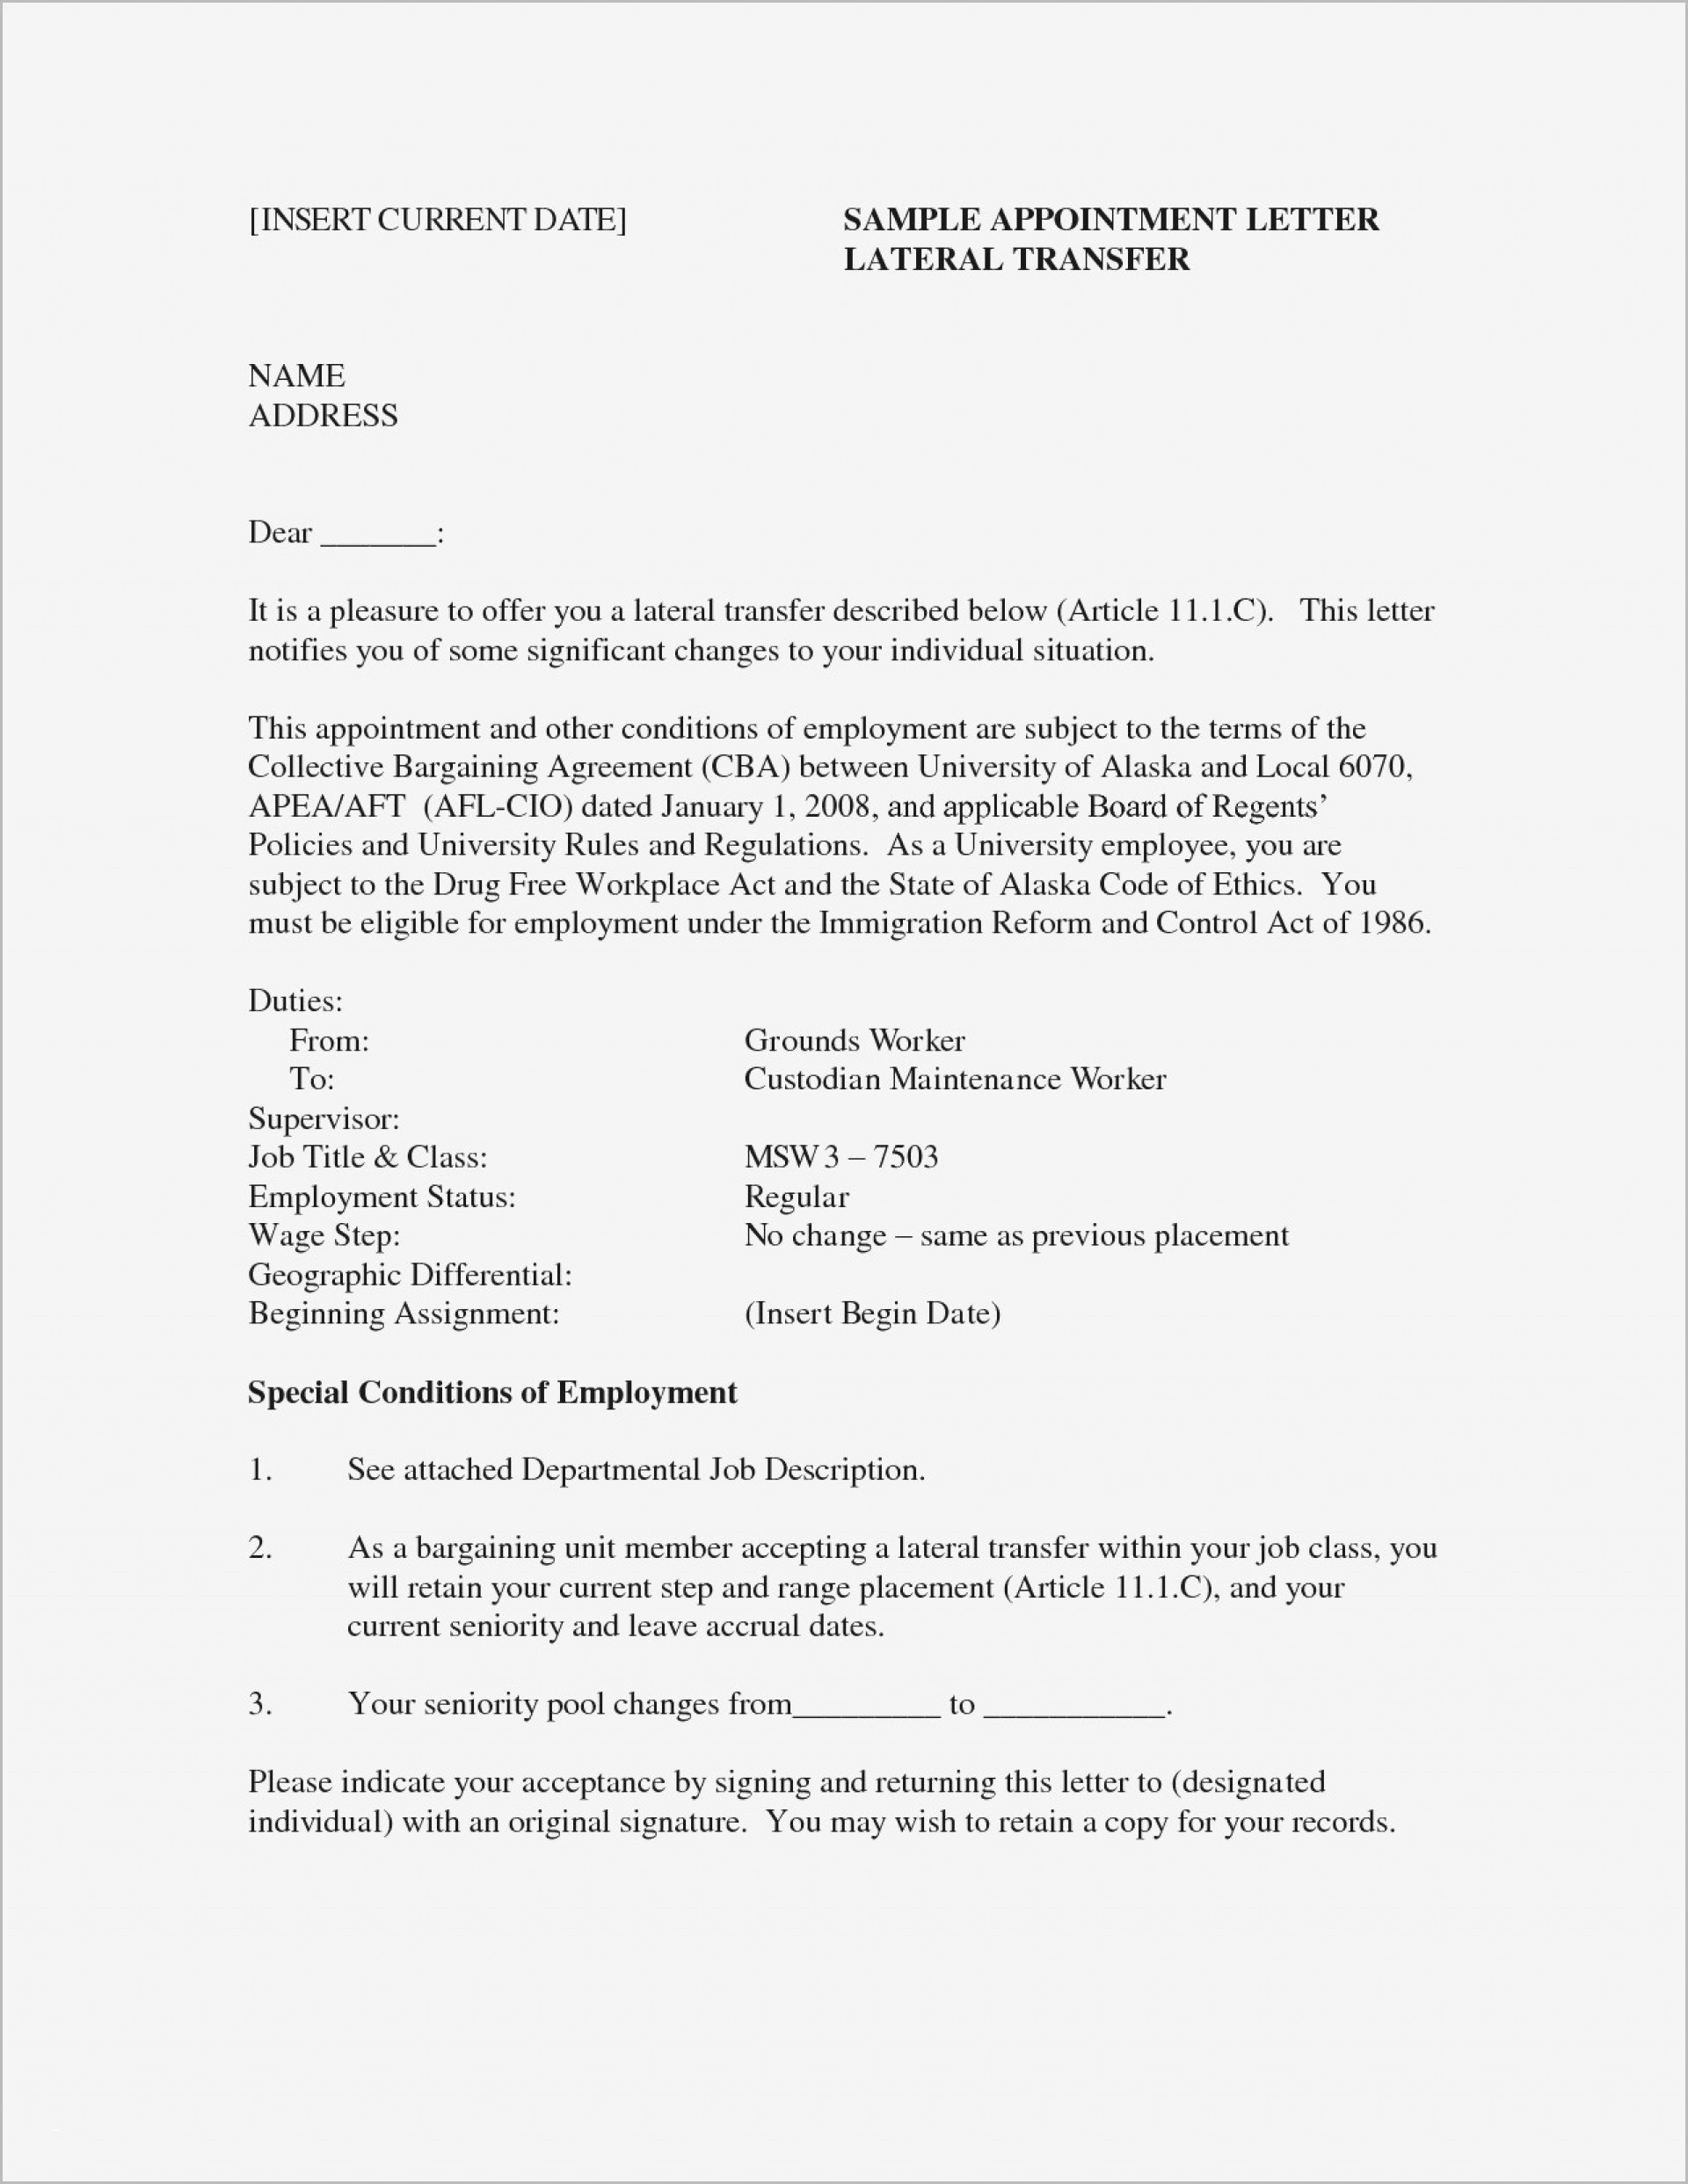 015 Resume For No Previous Work Experience Awesome Education Job Sample Of Research Paper How To Write Online Course On Writing A Class 1920